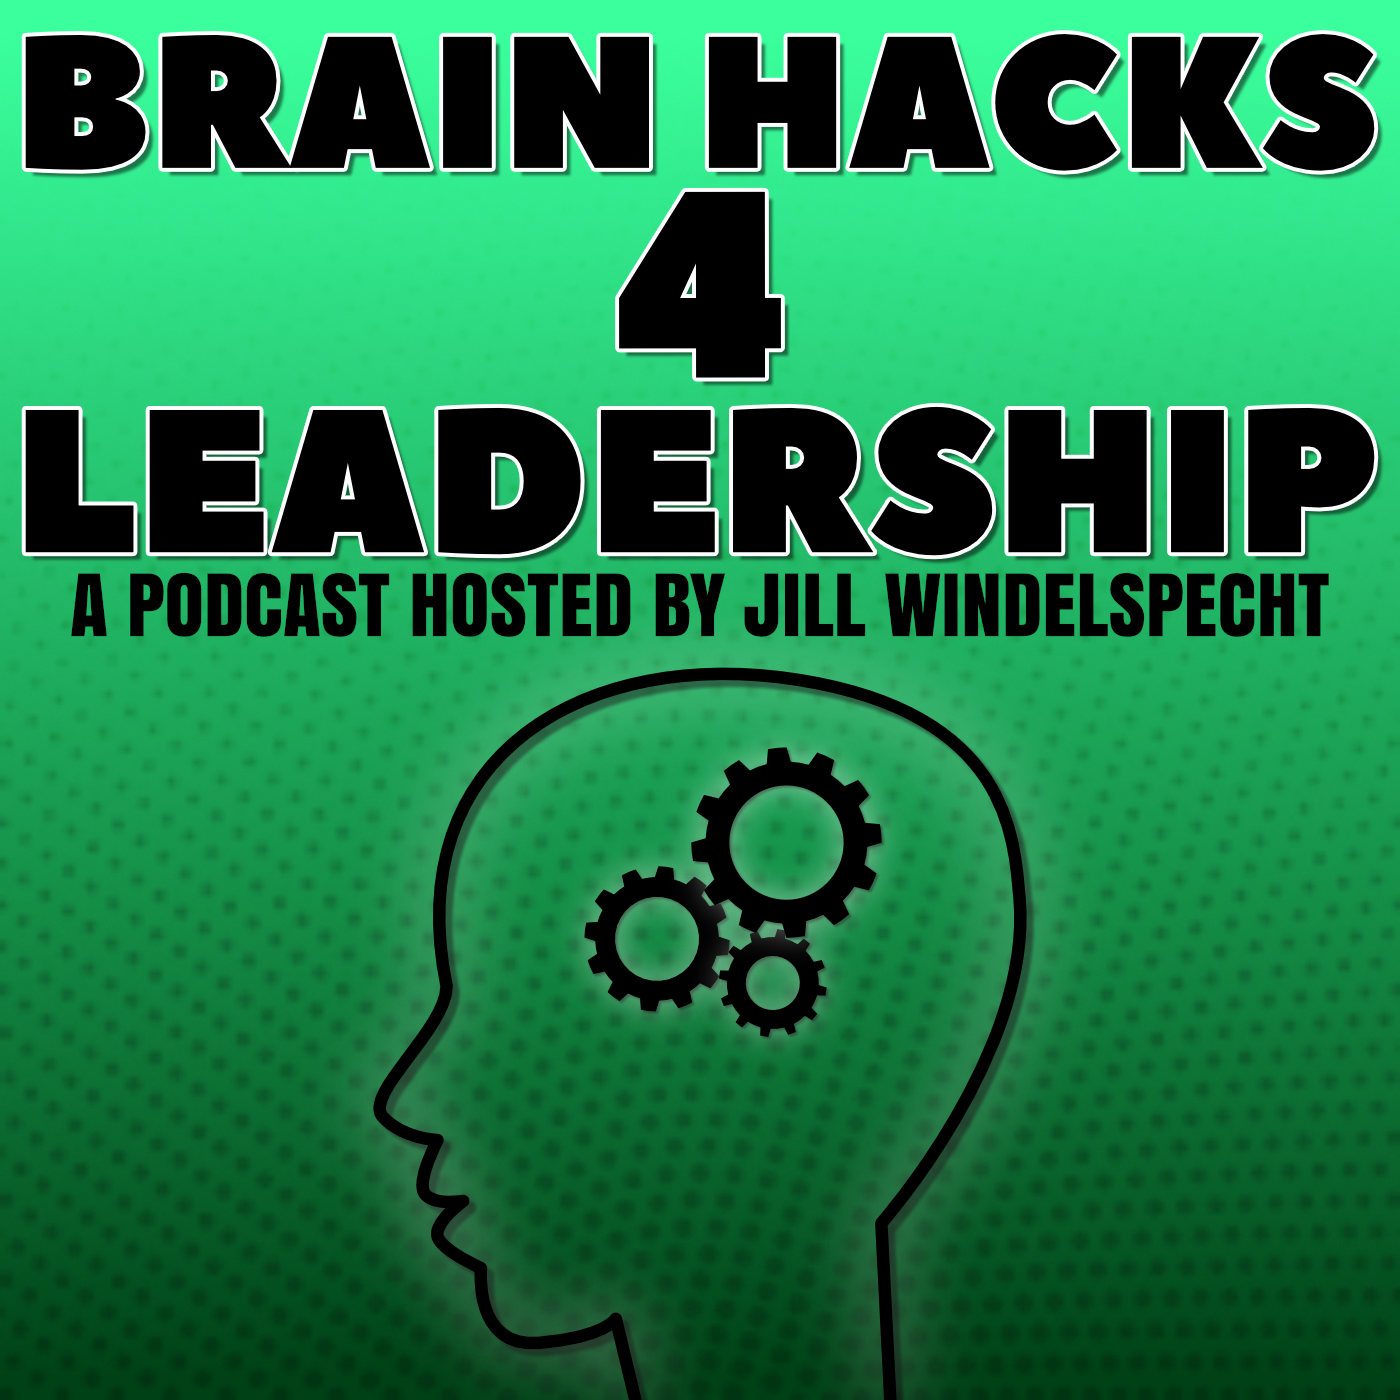 How To Apply Brain Science Of >> Brain Hacks 4 Leadership Listen Via Stitcher For Podcasts